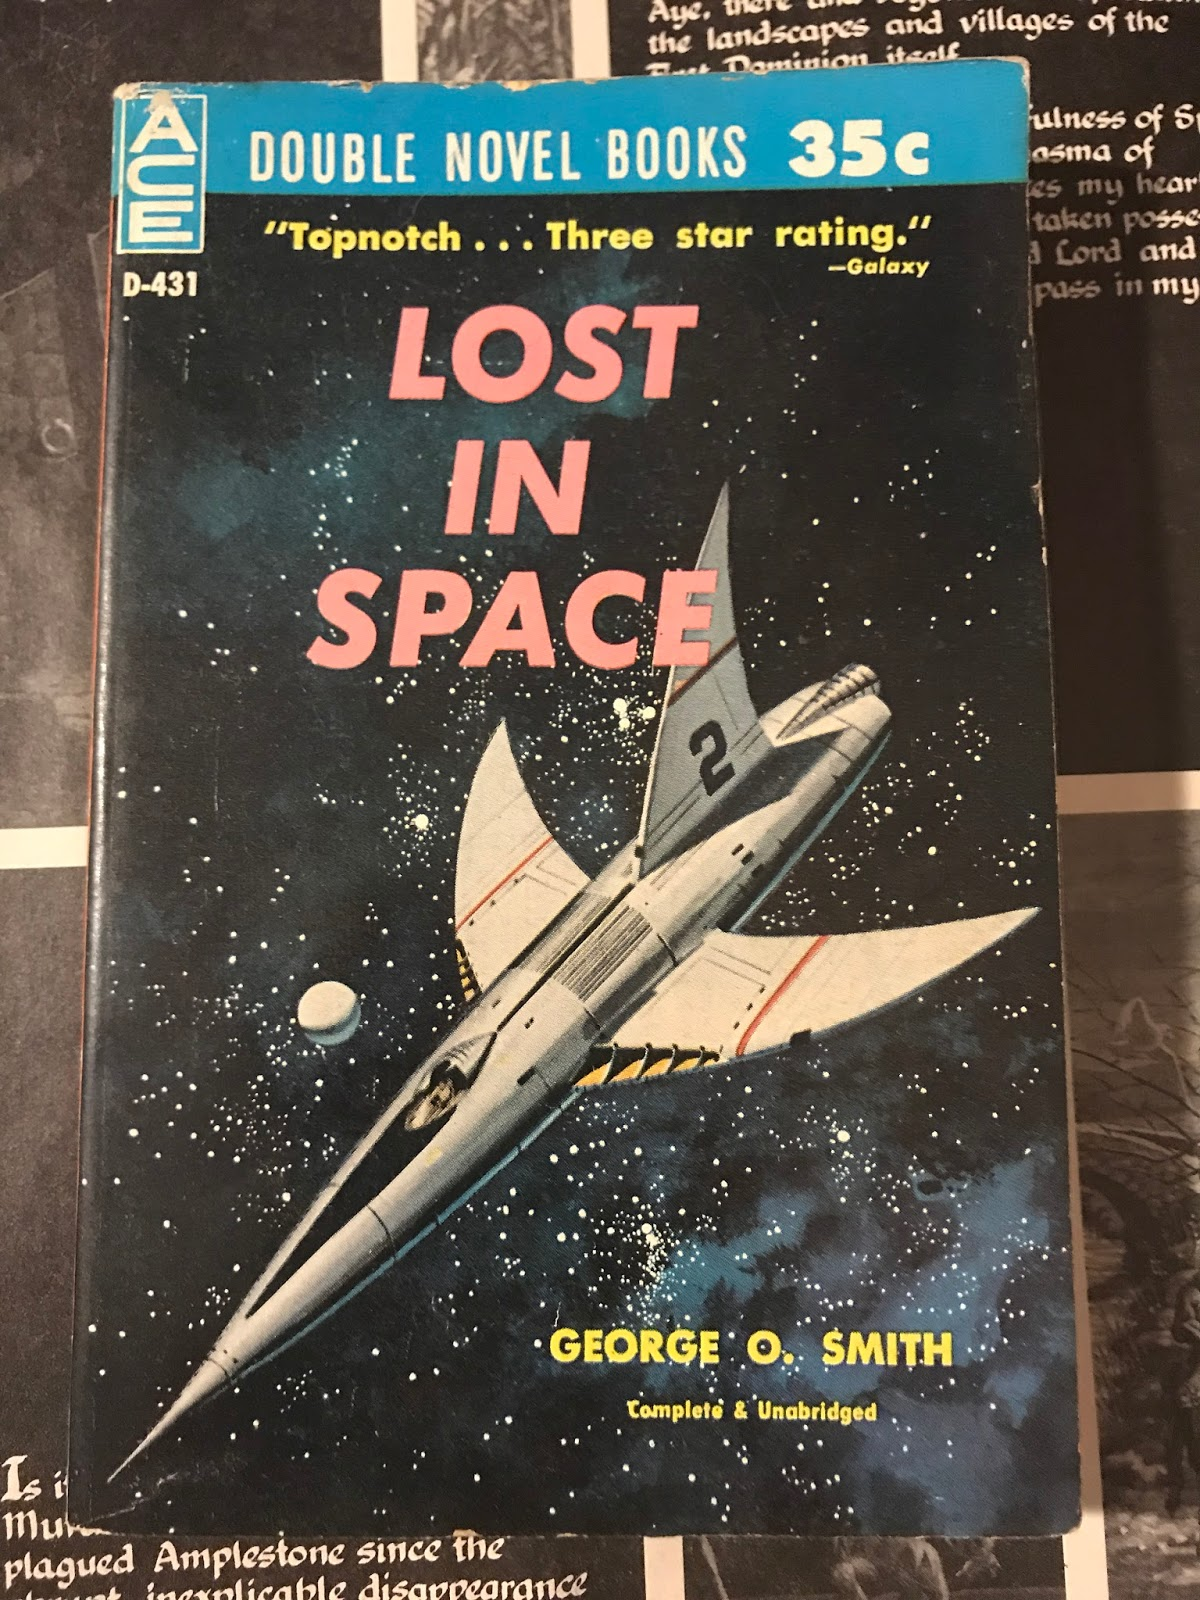 First Edition Fantasy: Vintage Science Fiction Book Covers ...